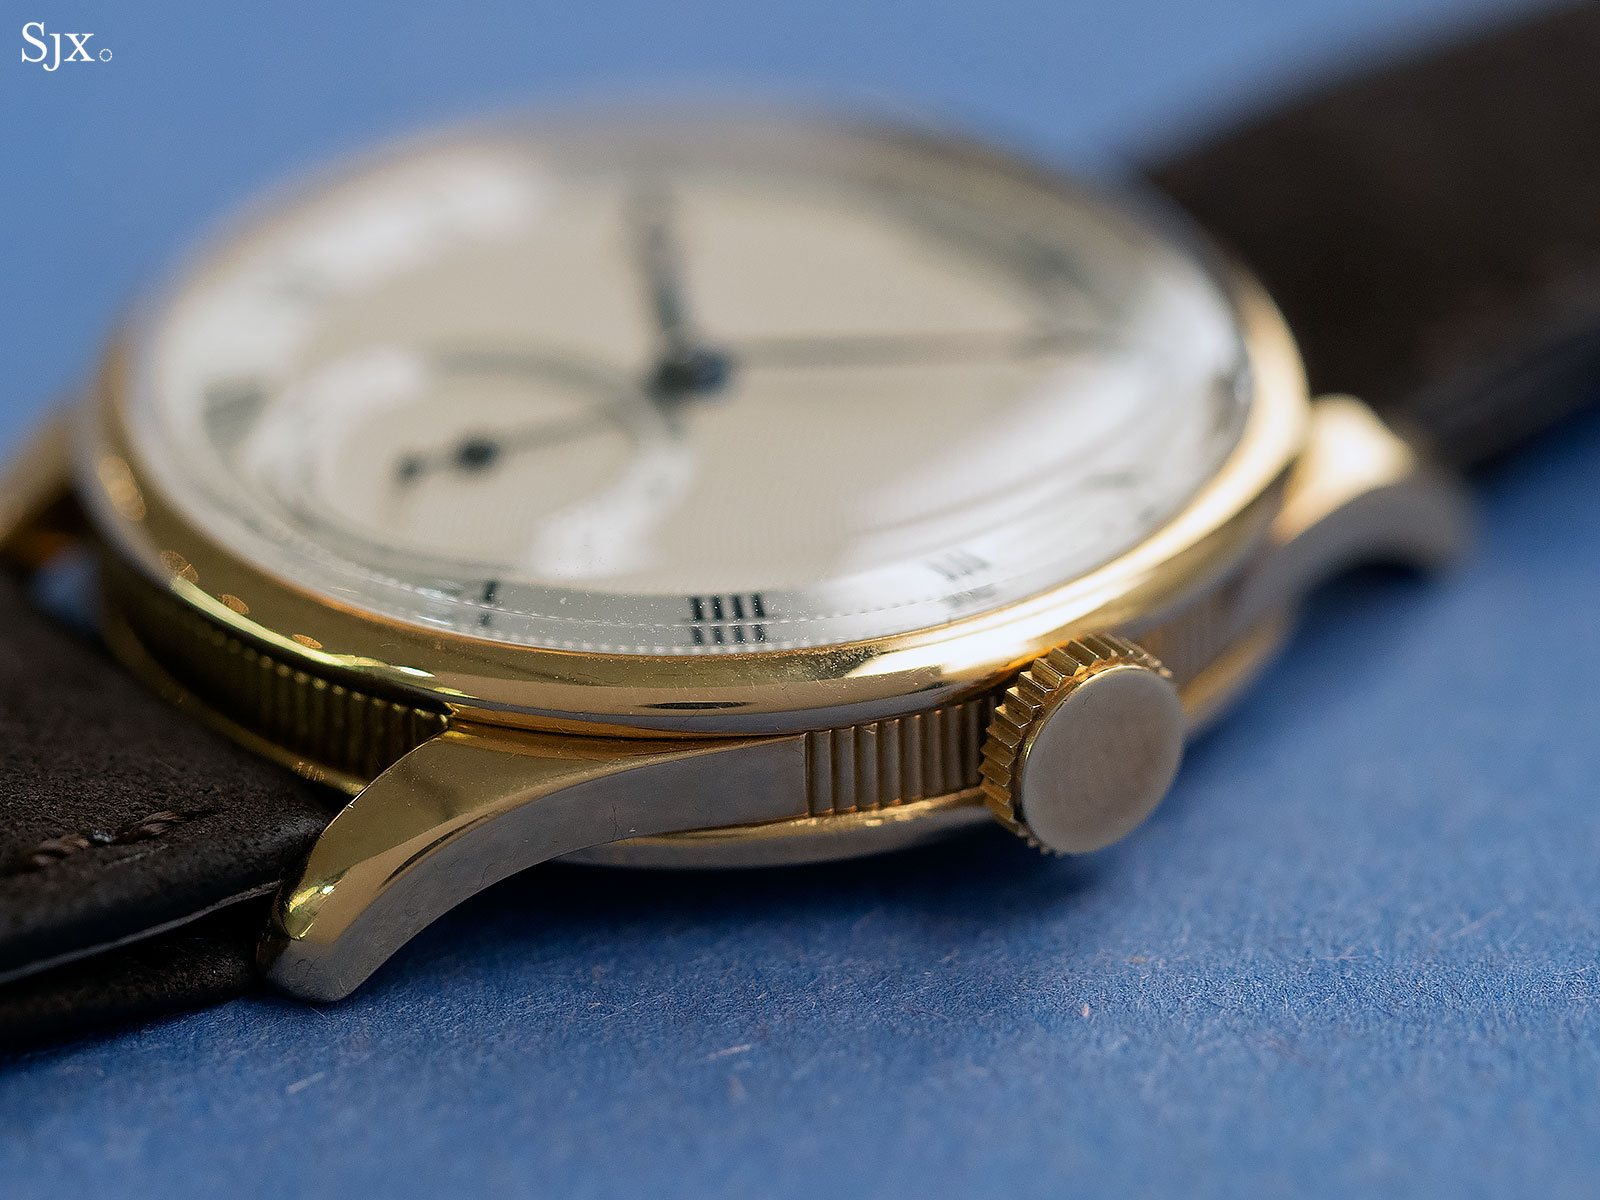 Breguet time-only chronometer 4296-6